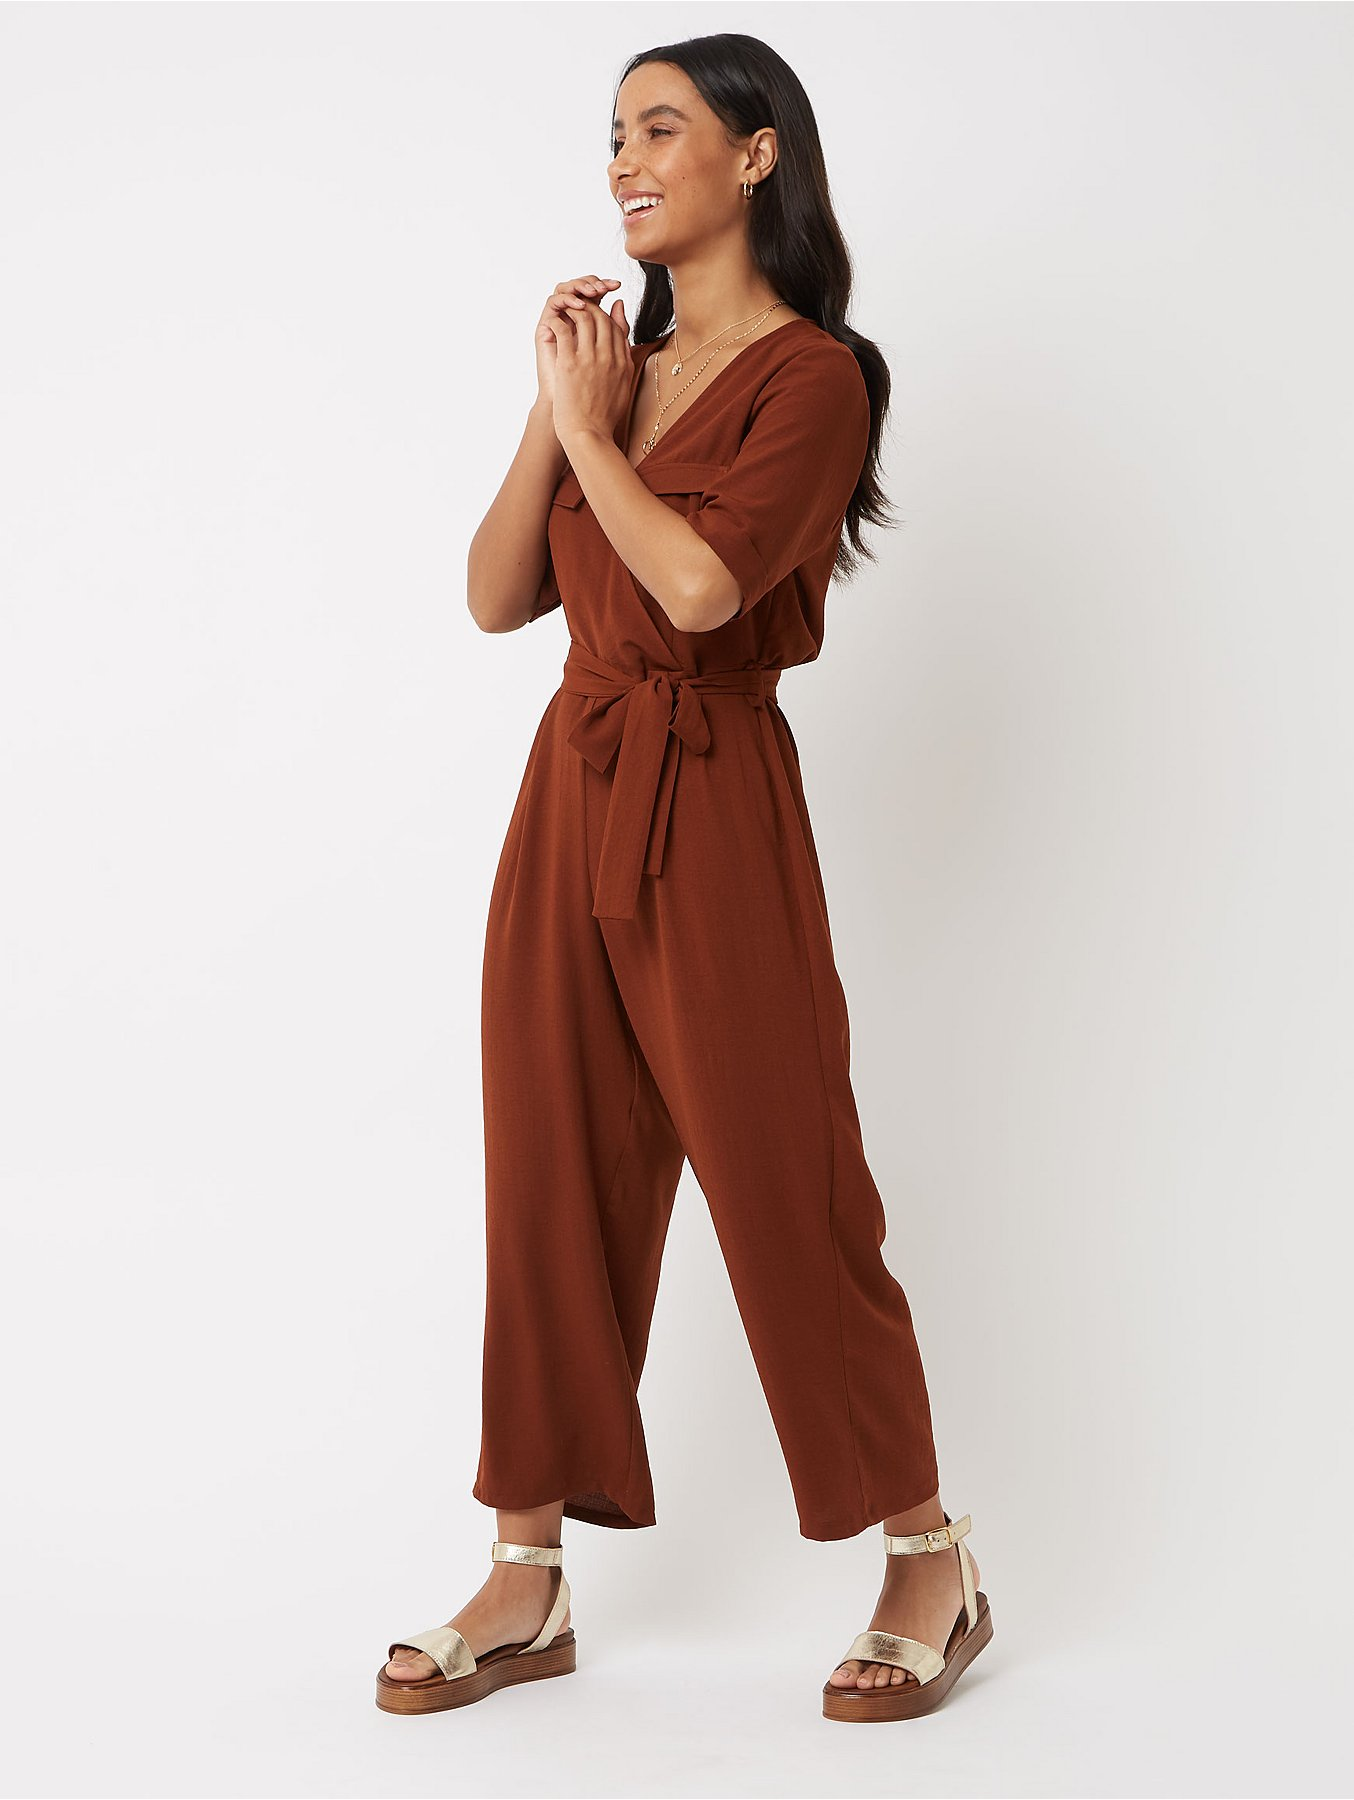 040b2f8a7b8 Chocolate Brown Utility Belted Jumpsuit. Reset